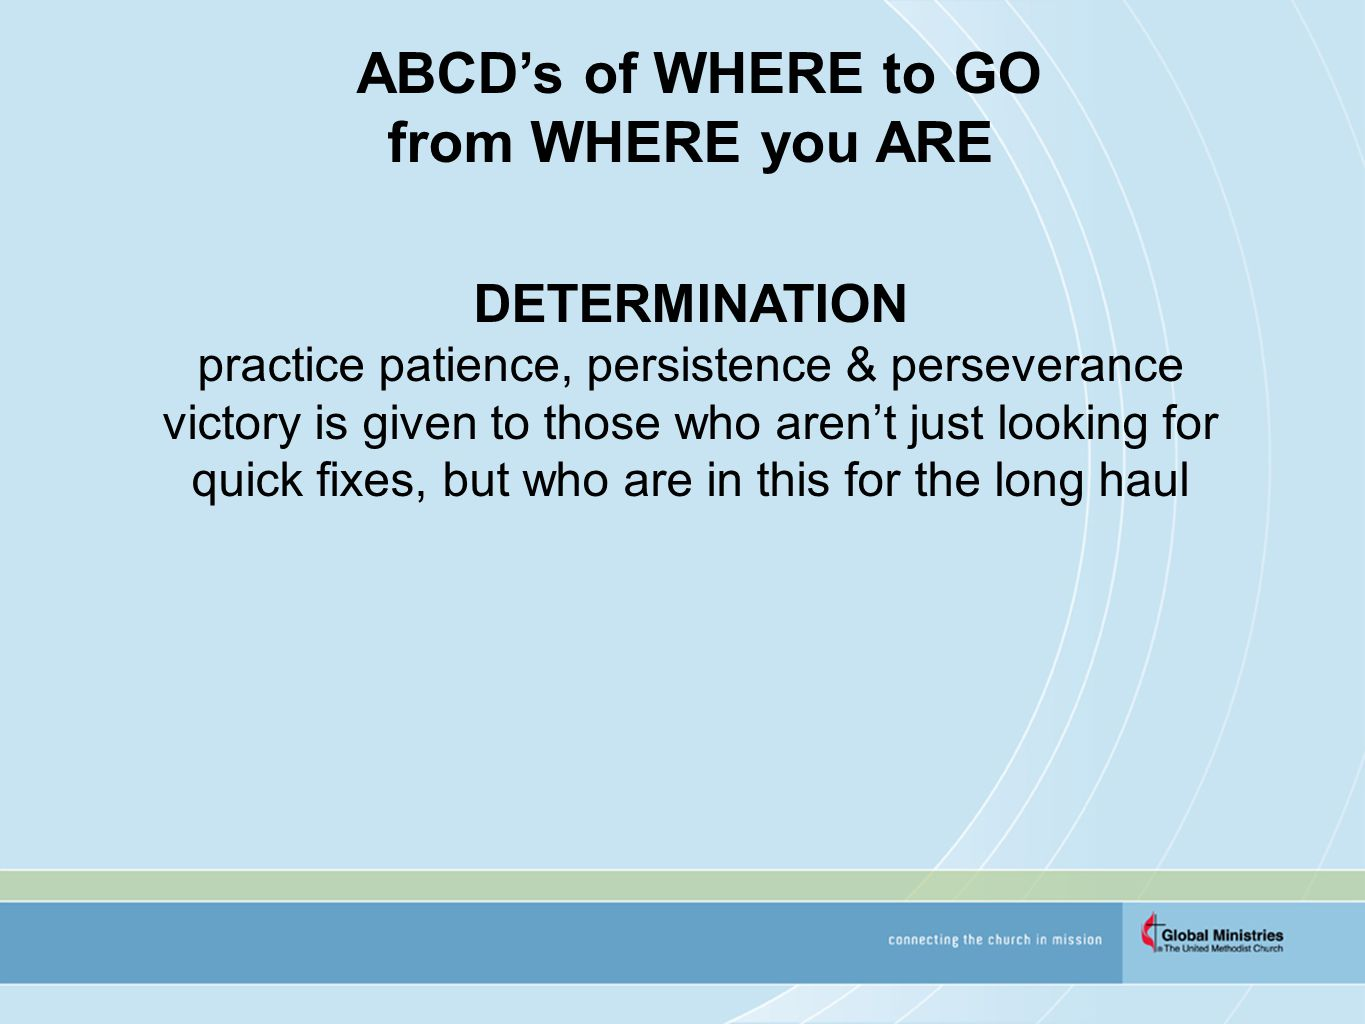 ABCD's of WHERE to GO from WHERE you ARE DETERMINATION practice patience, persistence & perseverance victory is given to those who aren't just looking for quick fixes, but who are in this for the long haul